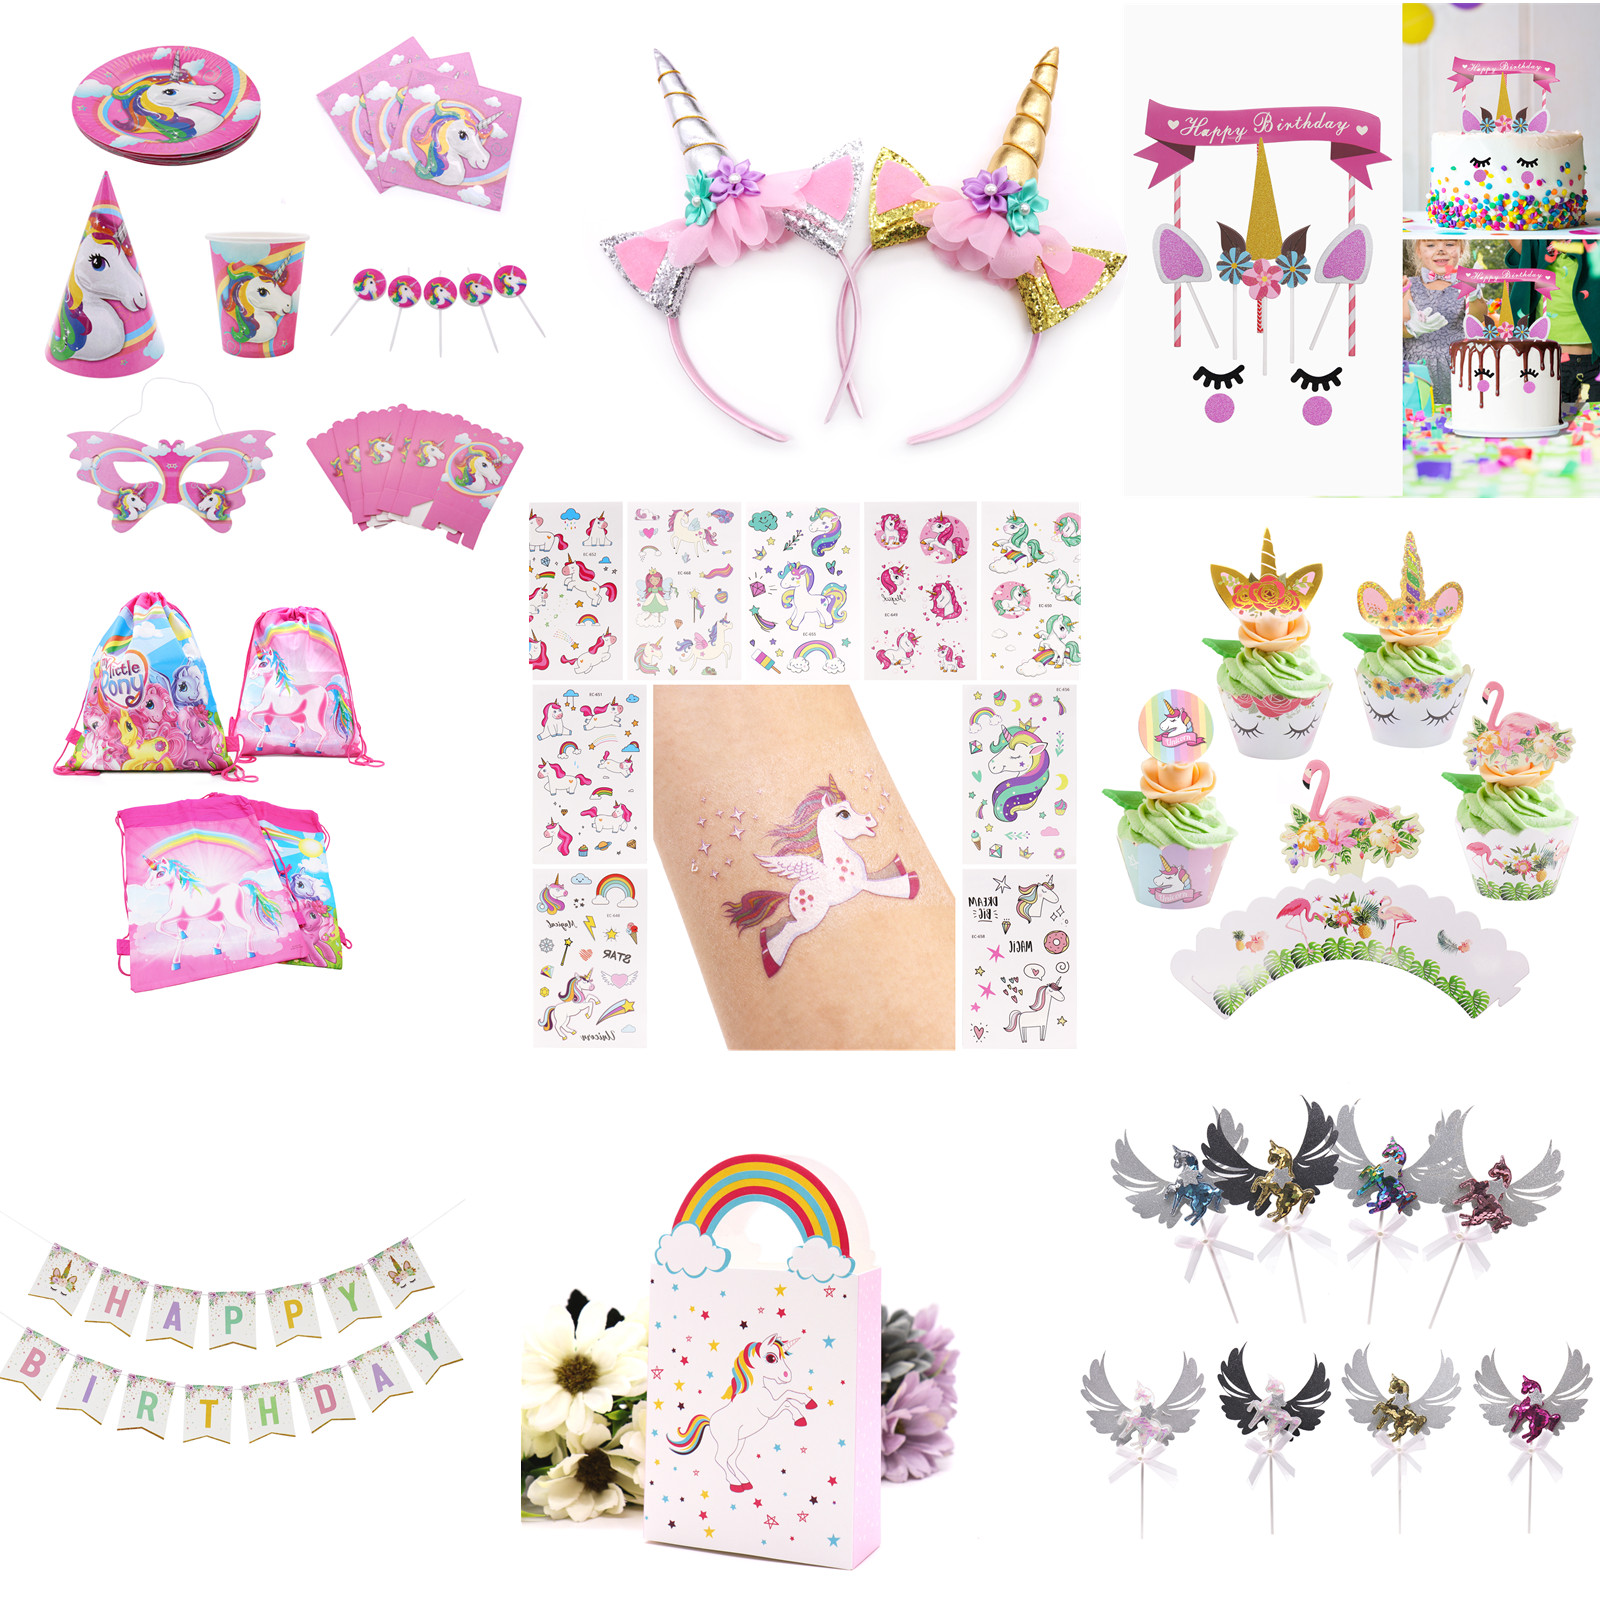 Online Shop Birthday Unicorn Party Photo Booth Props/Flag/Unicorn Tattoo Sticker/Birthday Party Decor Kids Baby Shower Eenhoorn Party Supply | Aliexpress Mobile